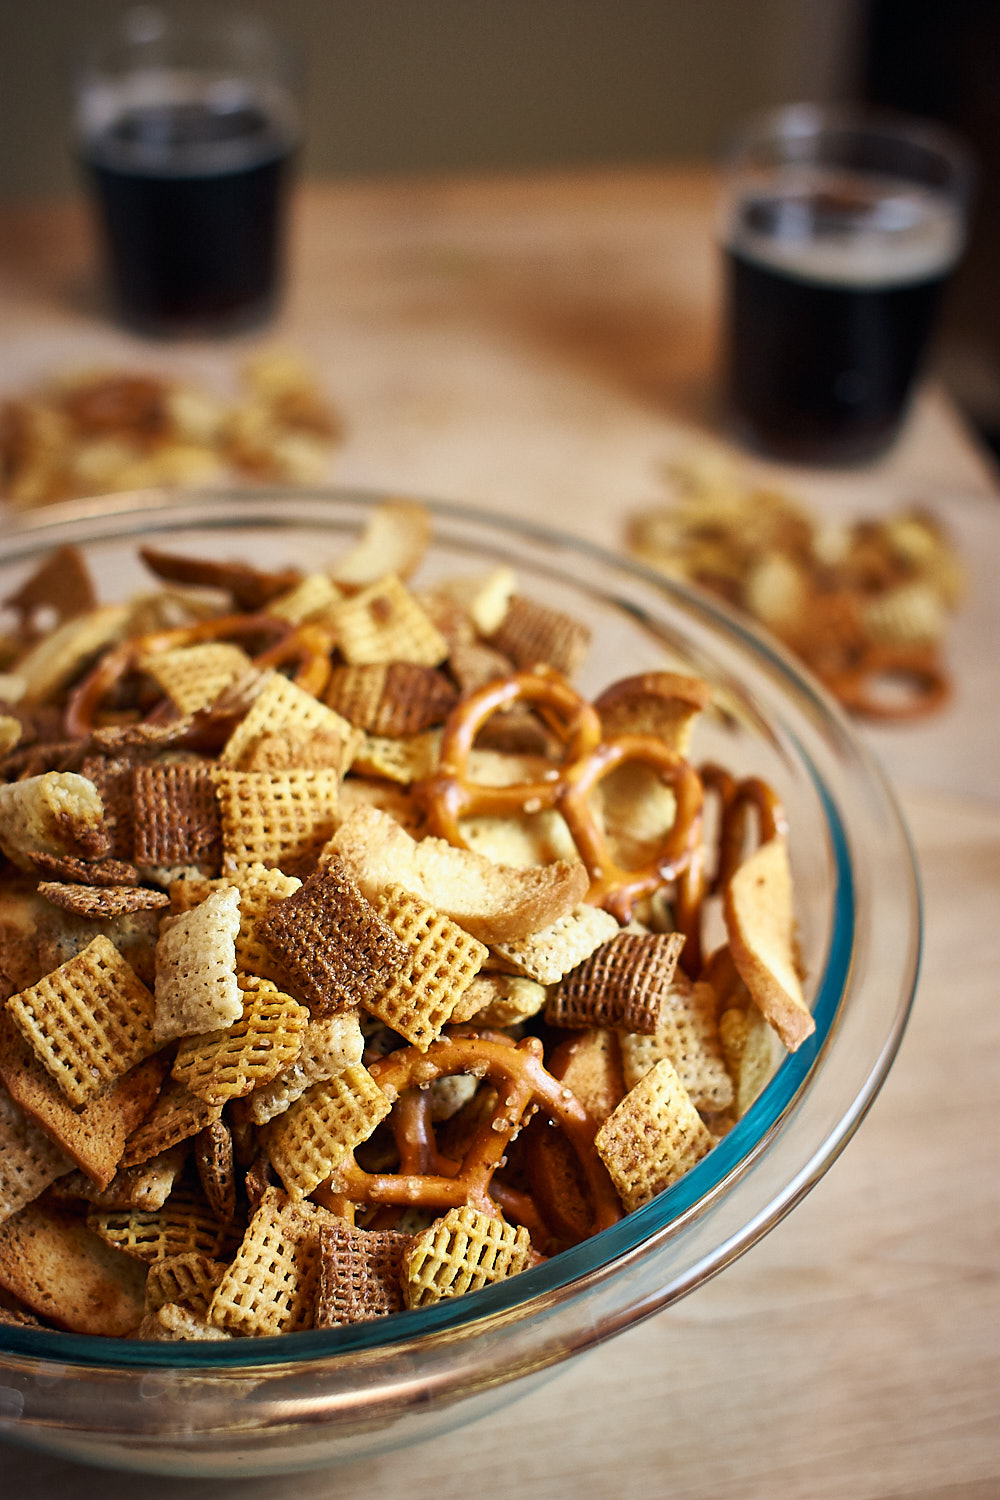 A bowl of dairy-free Chex mix and root beer.